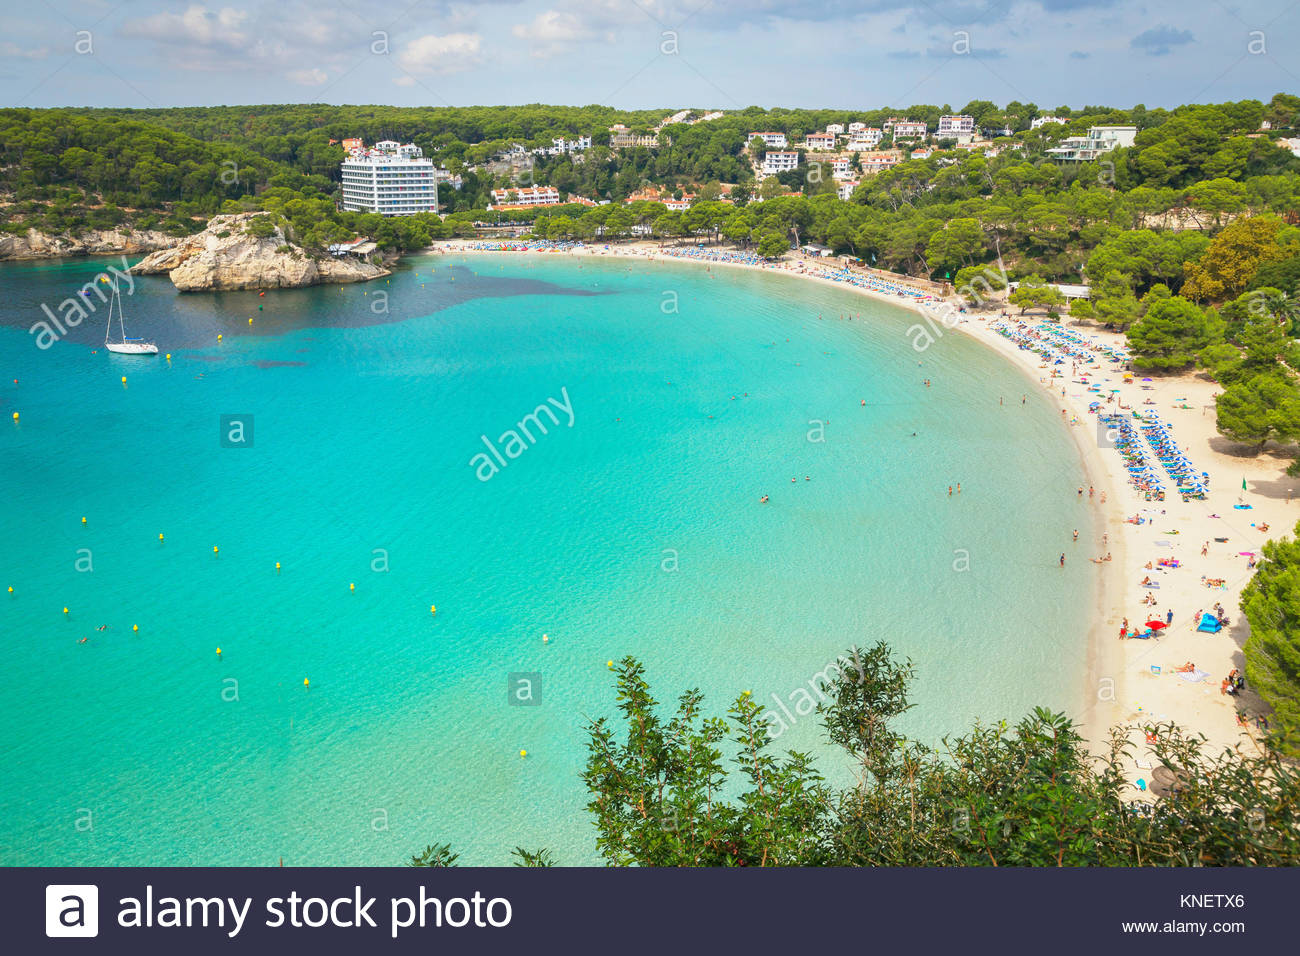 View of holiday makers on sandy beach at Cala Galdana, Menorca, Balearic Islands, Spain - Stock Image